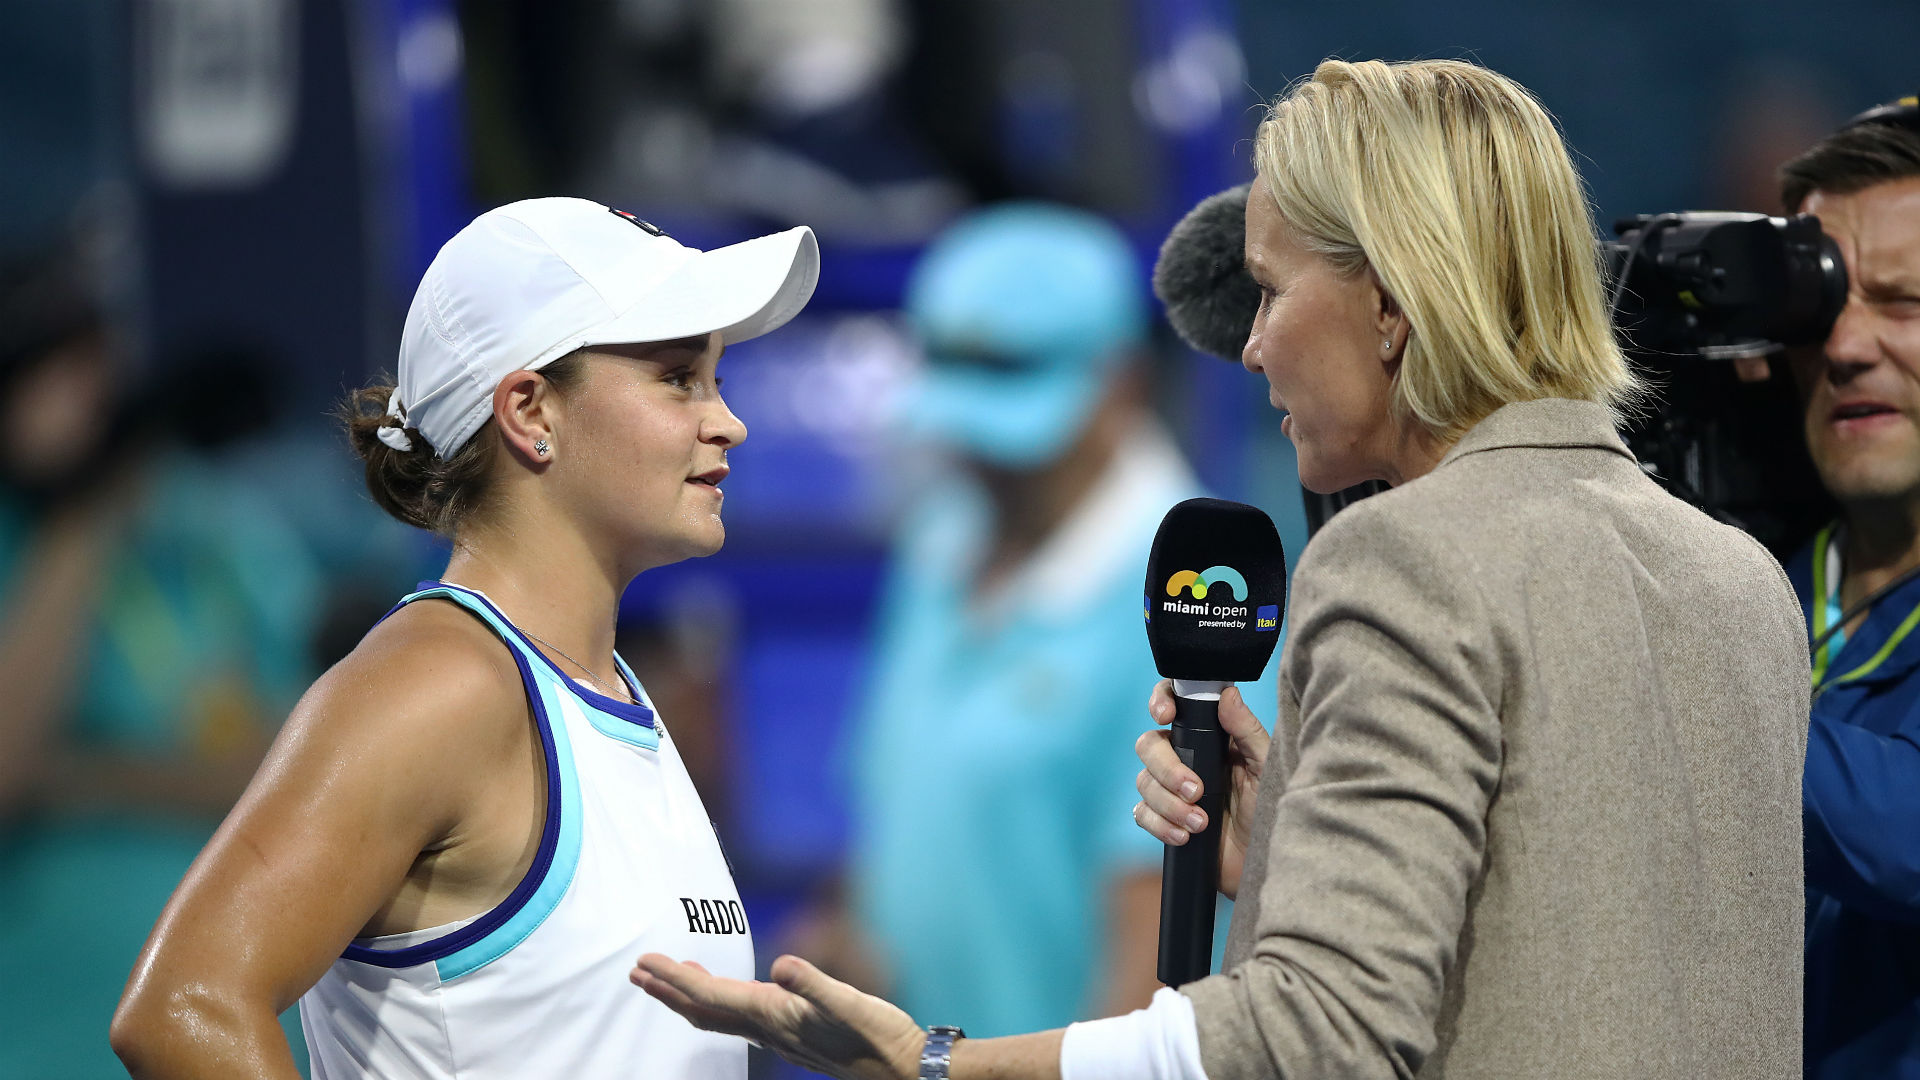 Rennae Stubbs says Ashleigh Barty can go from strength to strength after experiencing her finest hour in Paris.